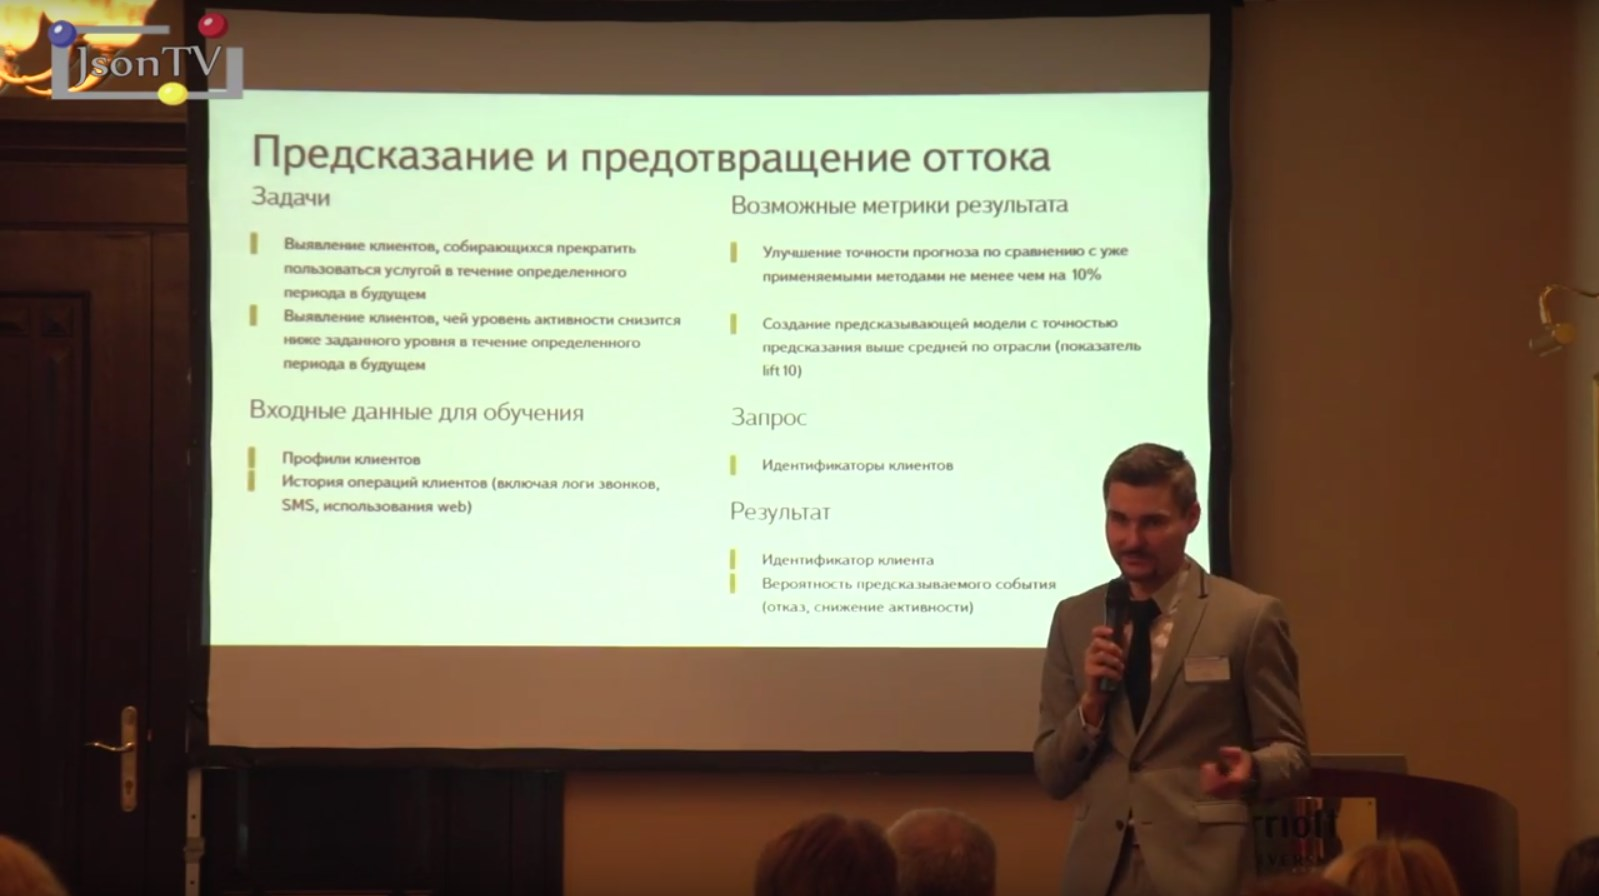 Connectica Lab. Telecoms Loyalty & Customer Data. Сергей Чернов, Yandex Data Factory: machine learning и абонентская лояльность